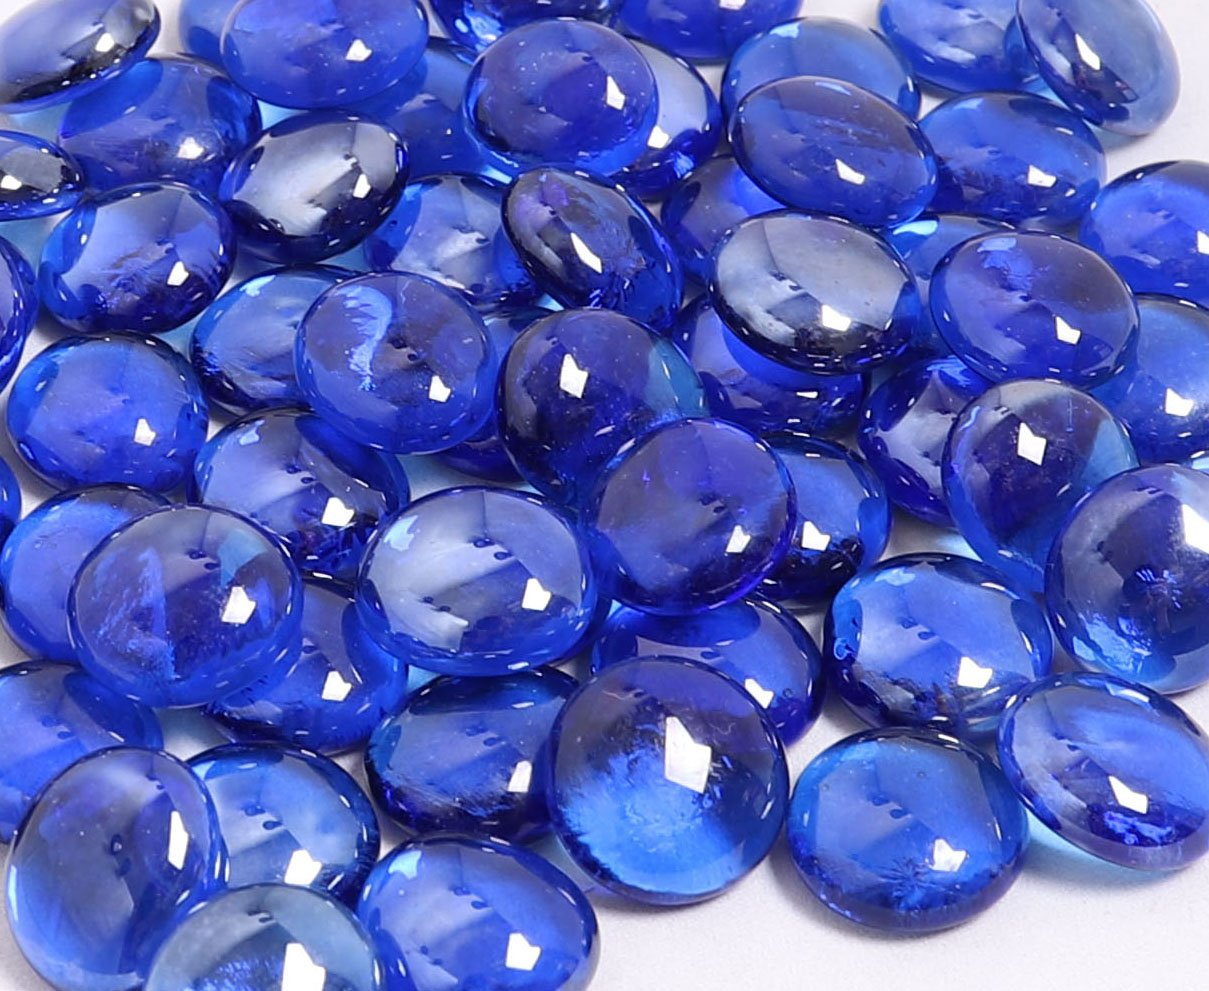 KIBOW 10-Pound Pack Fire Glass Beads Fire Glass Drops for Gas Fire Pit, 3/4 Inch-Cobalt Blue